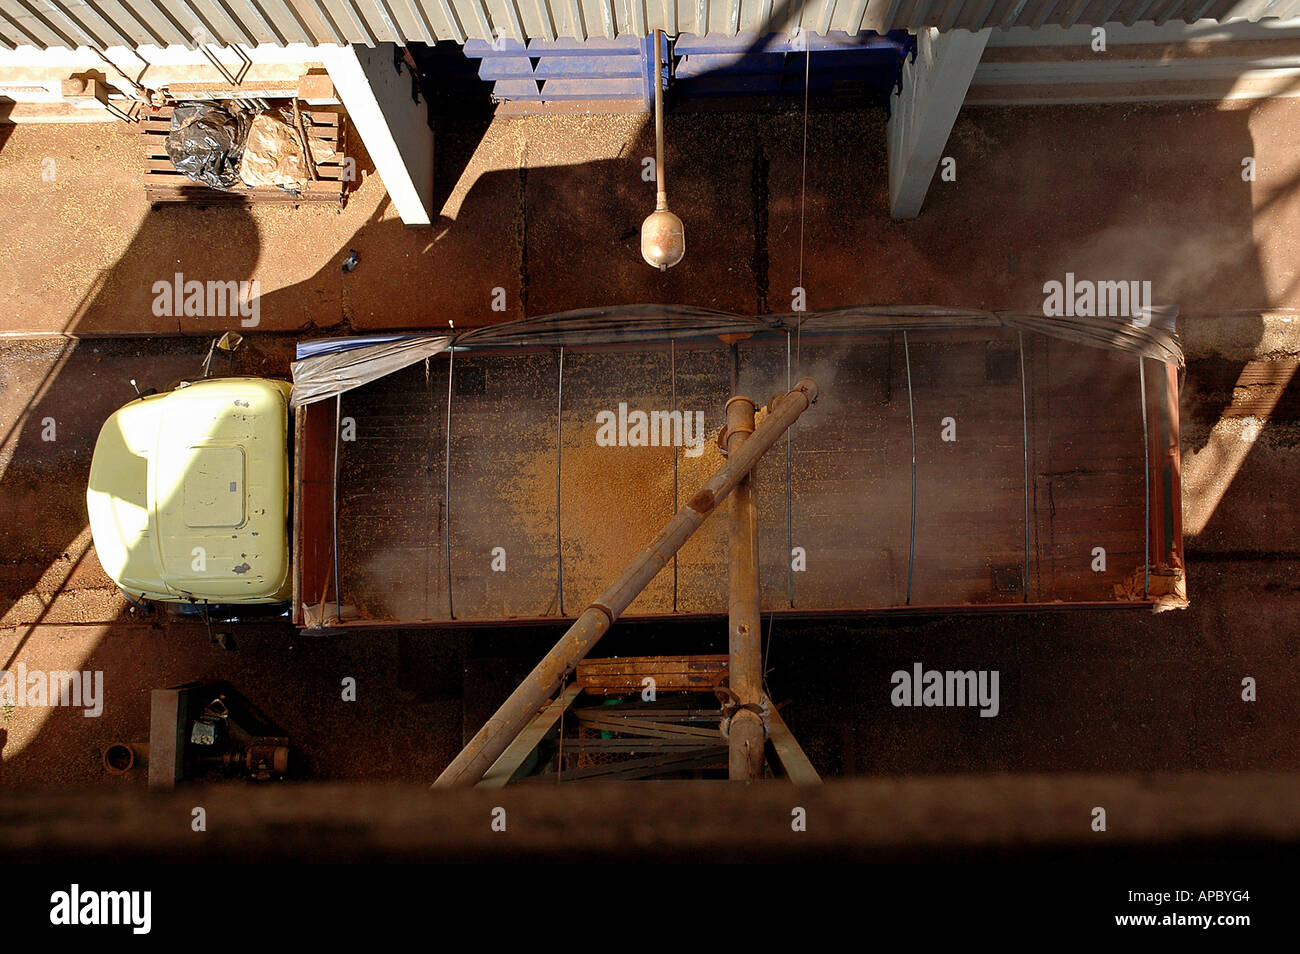 "Loading of a truck with soy beans by the ""Companhia de Armazens e Silos do Estado de Minas Gerais"" (CASEMG) in Uberaba Stock Photo"